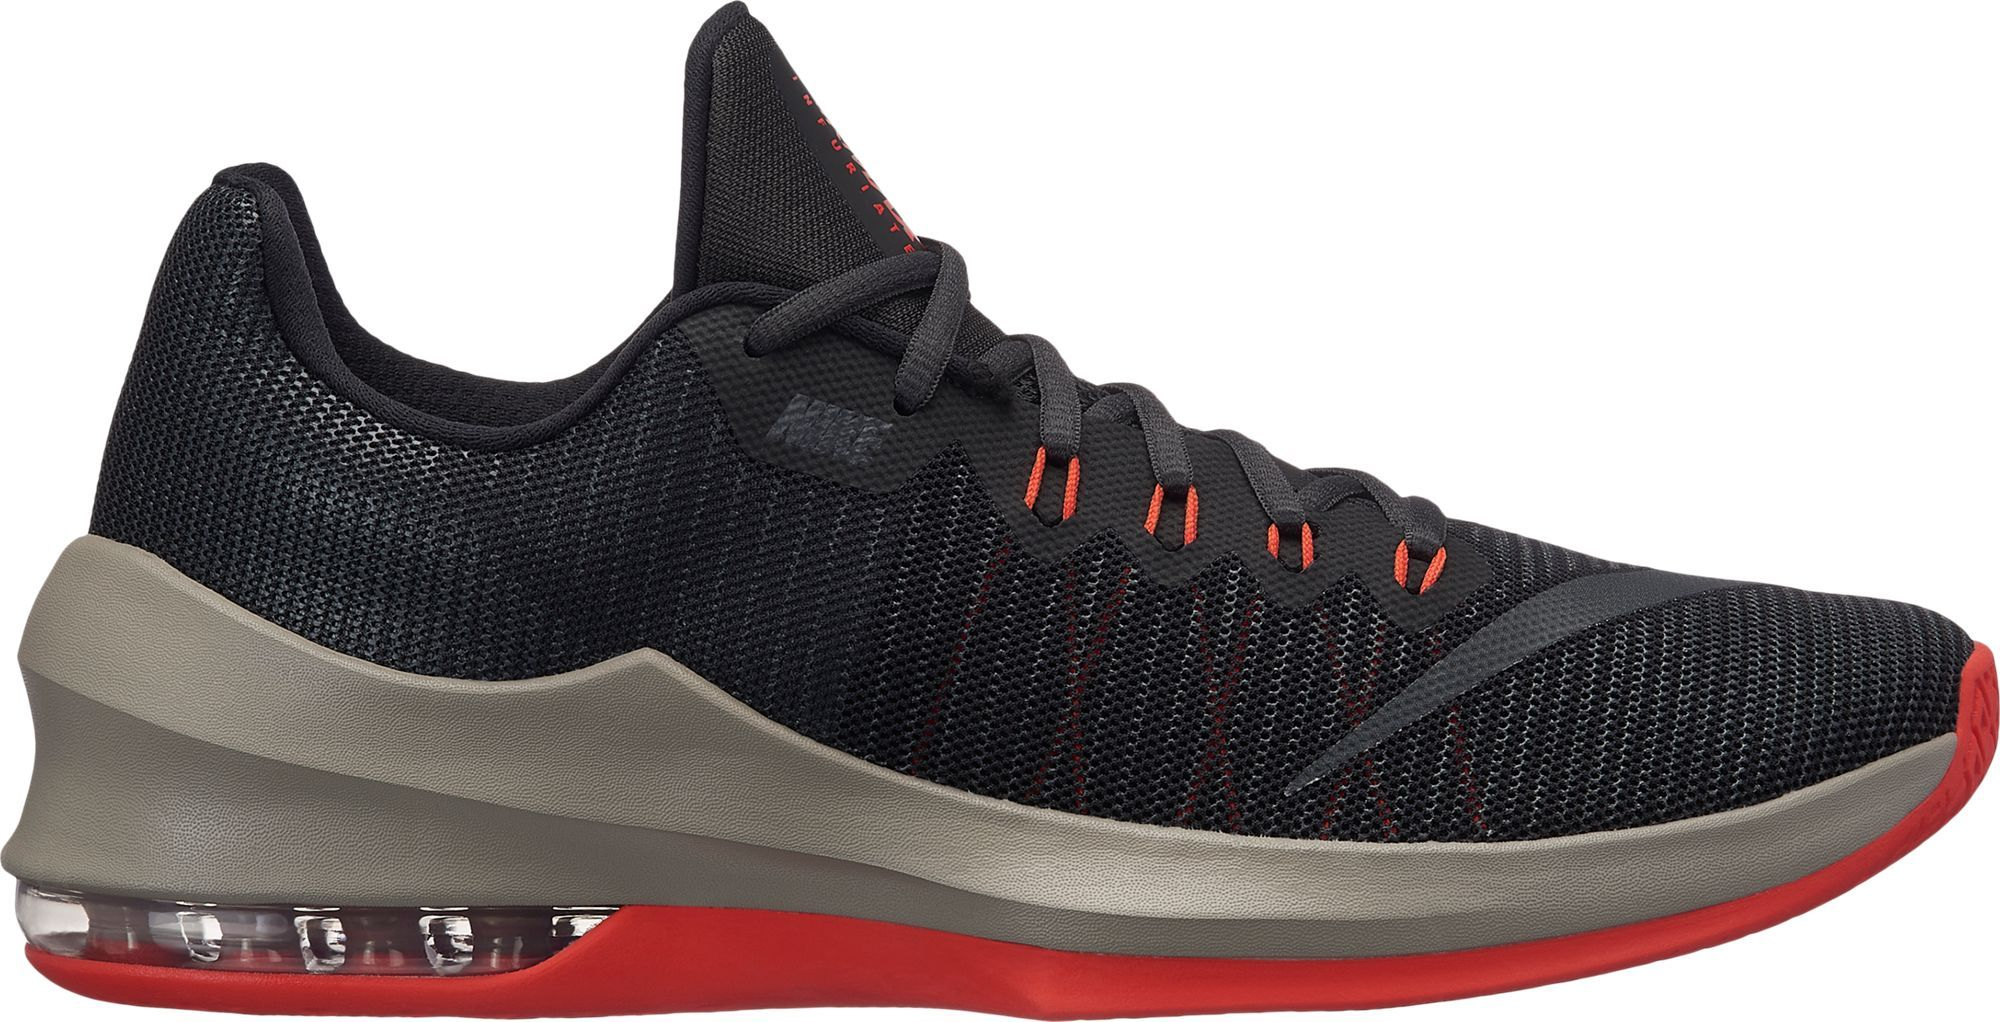 the best attitude 166d4 bd018 Nike Men s Air Max Infuriate 2 Low Basketball Shoes, Black